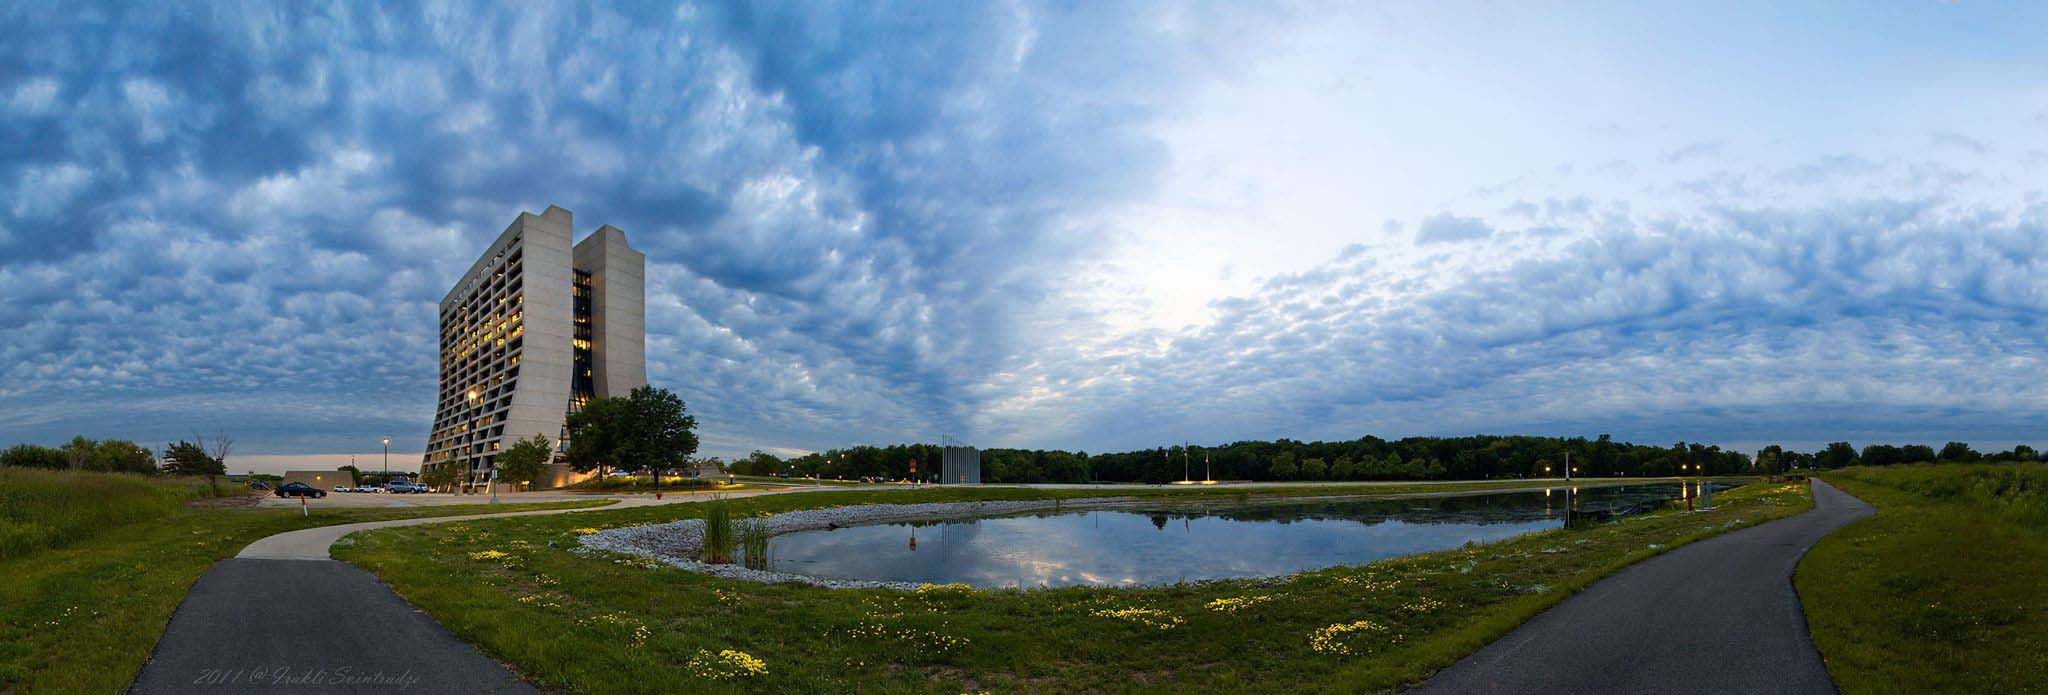 Irakli Svintradze, formerly of Kansas State University and the LHC Physics Center, took this panoramic view of the Fermilab grounds in the summertime. Photo: Irakli Svintradze